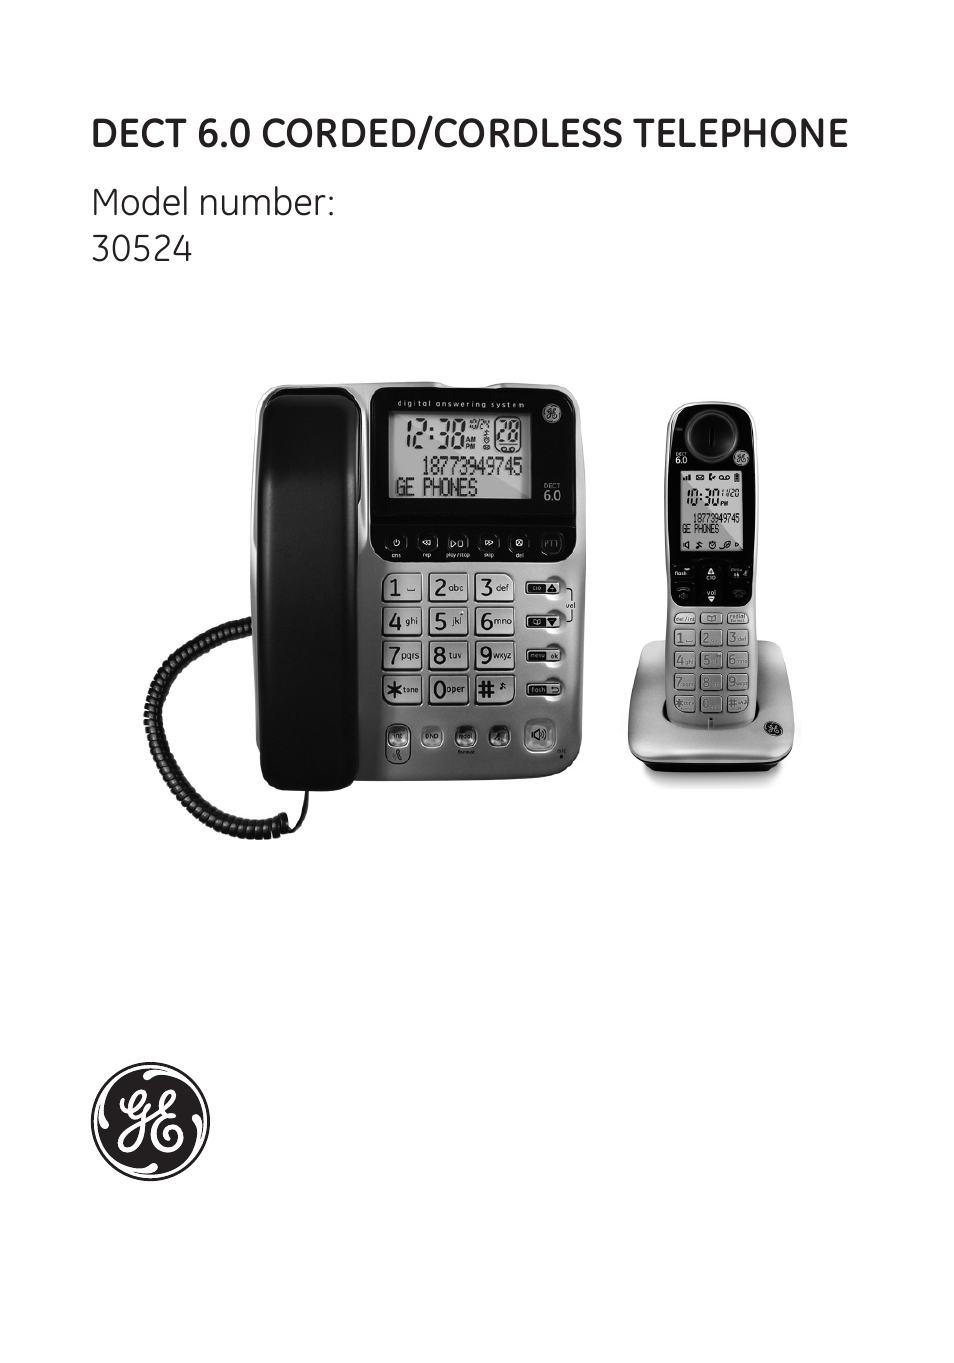 30784 dect 6. 0 bluetooth corded/cordless telephone user manual.